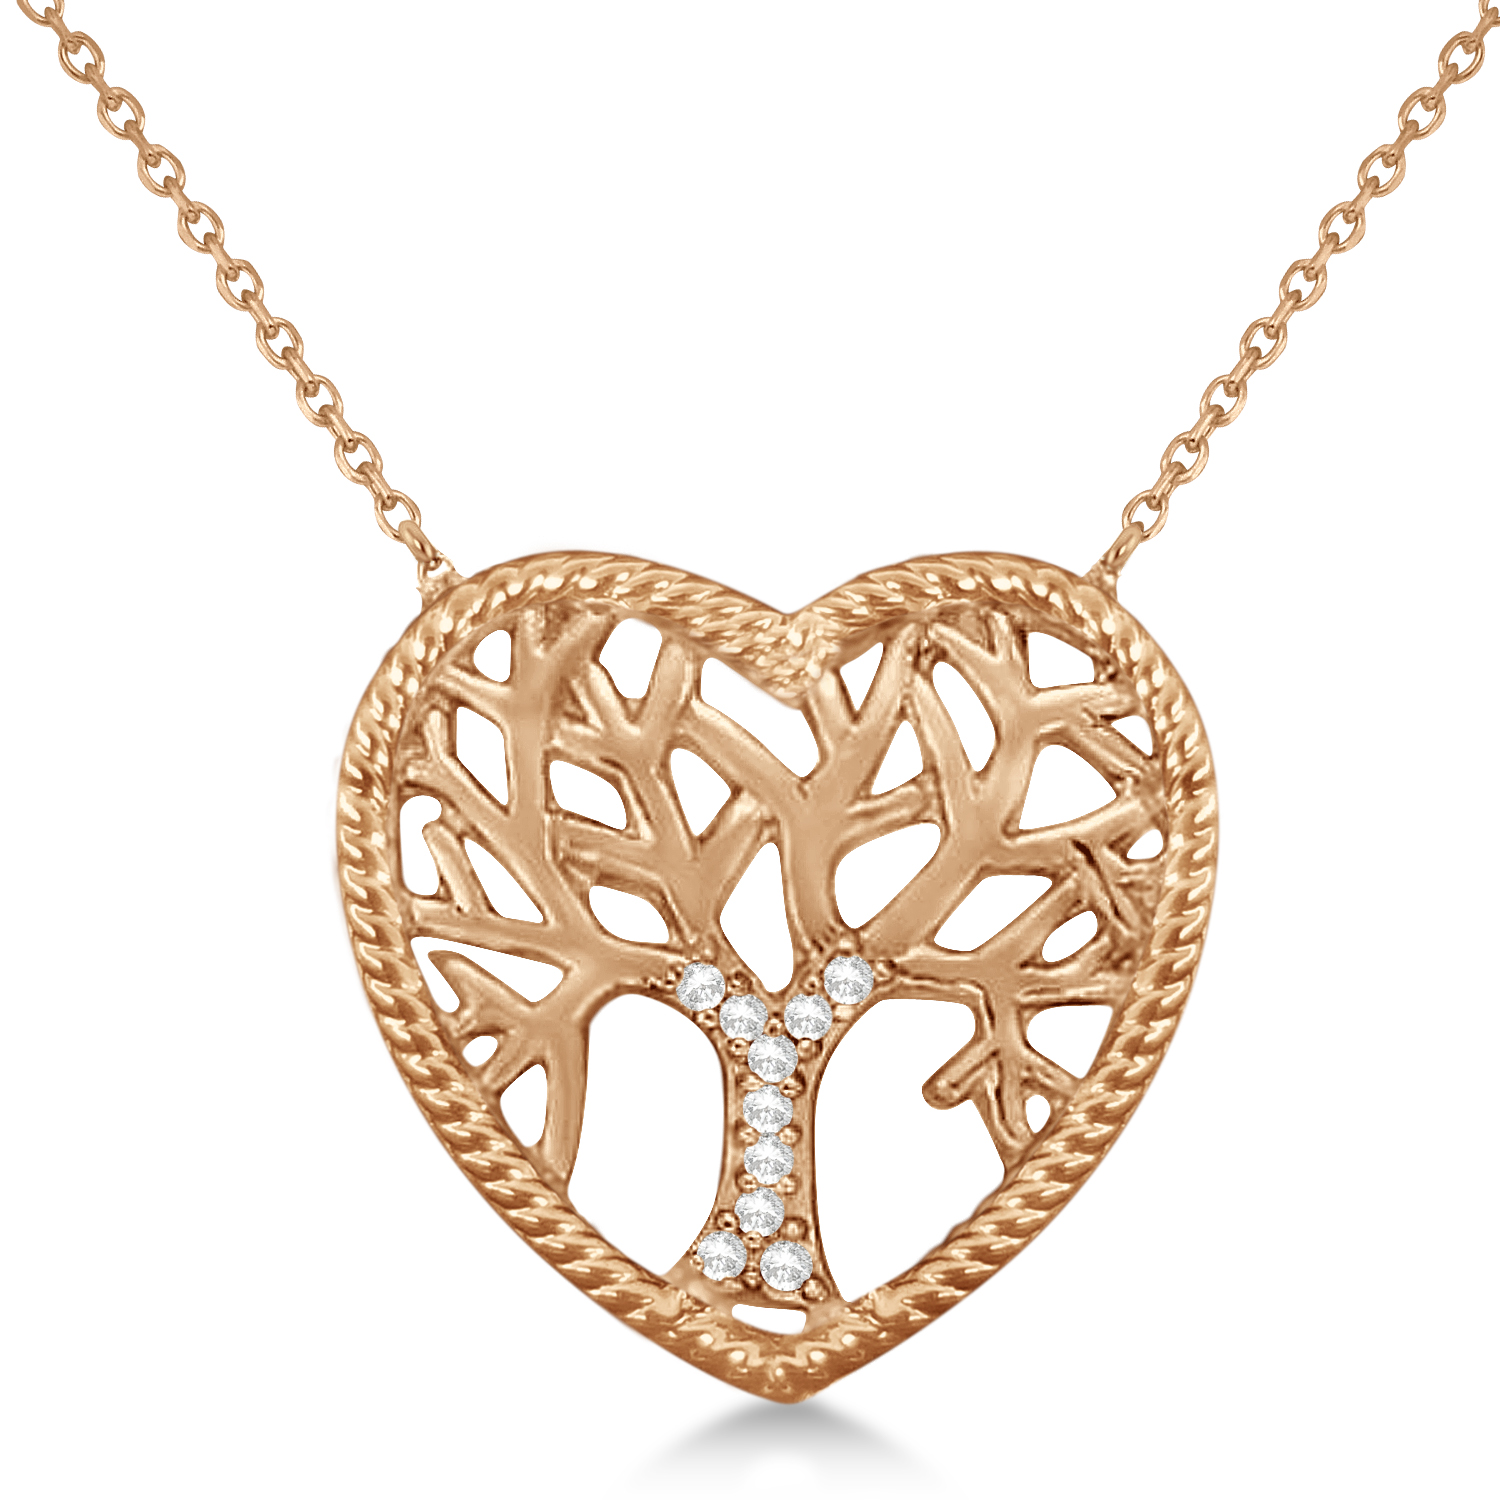 57a725a450 Diamond Heart Family Tree of Life Pendant Necklace 14k Rose Gold (0.05ct)